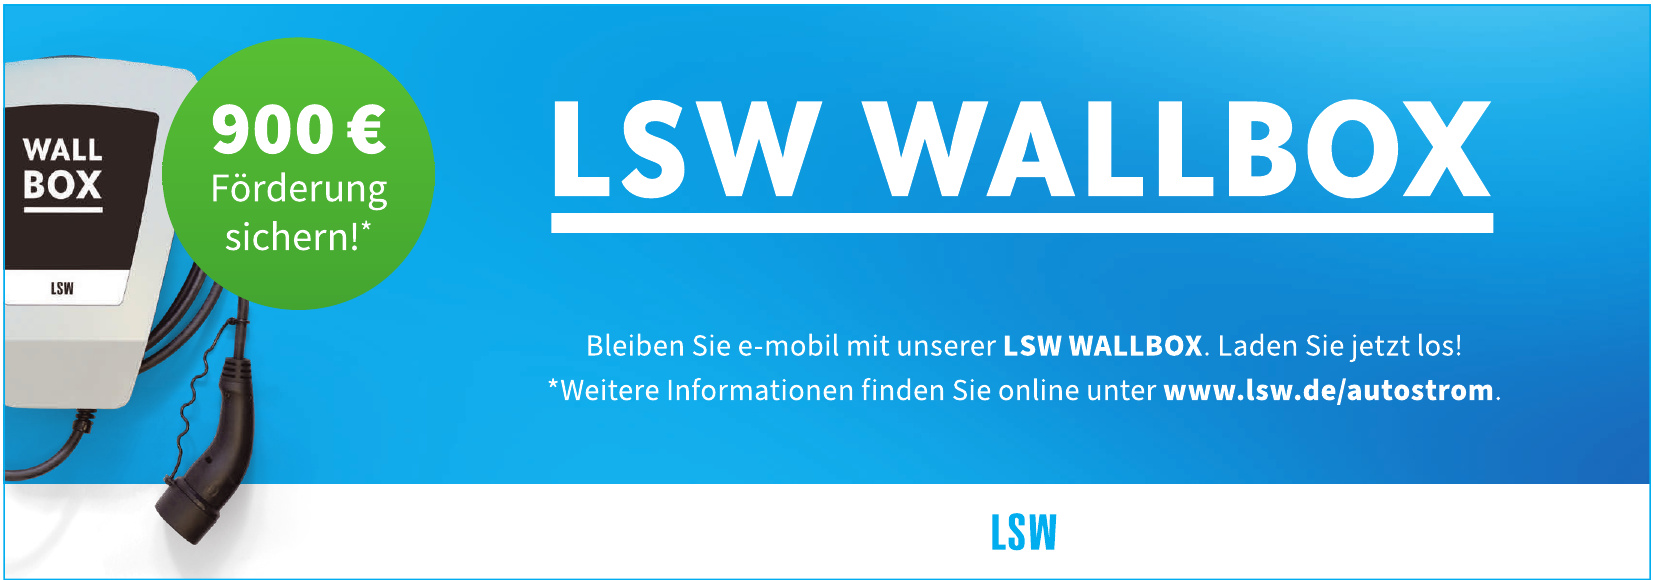 LSW Wallbox